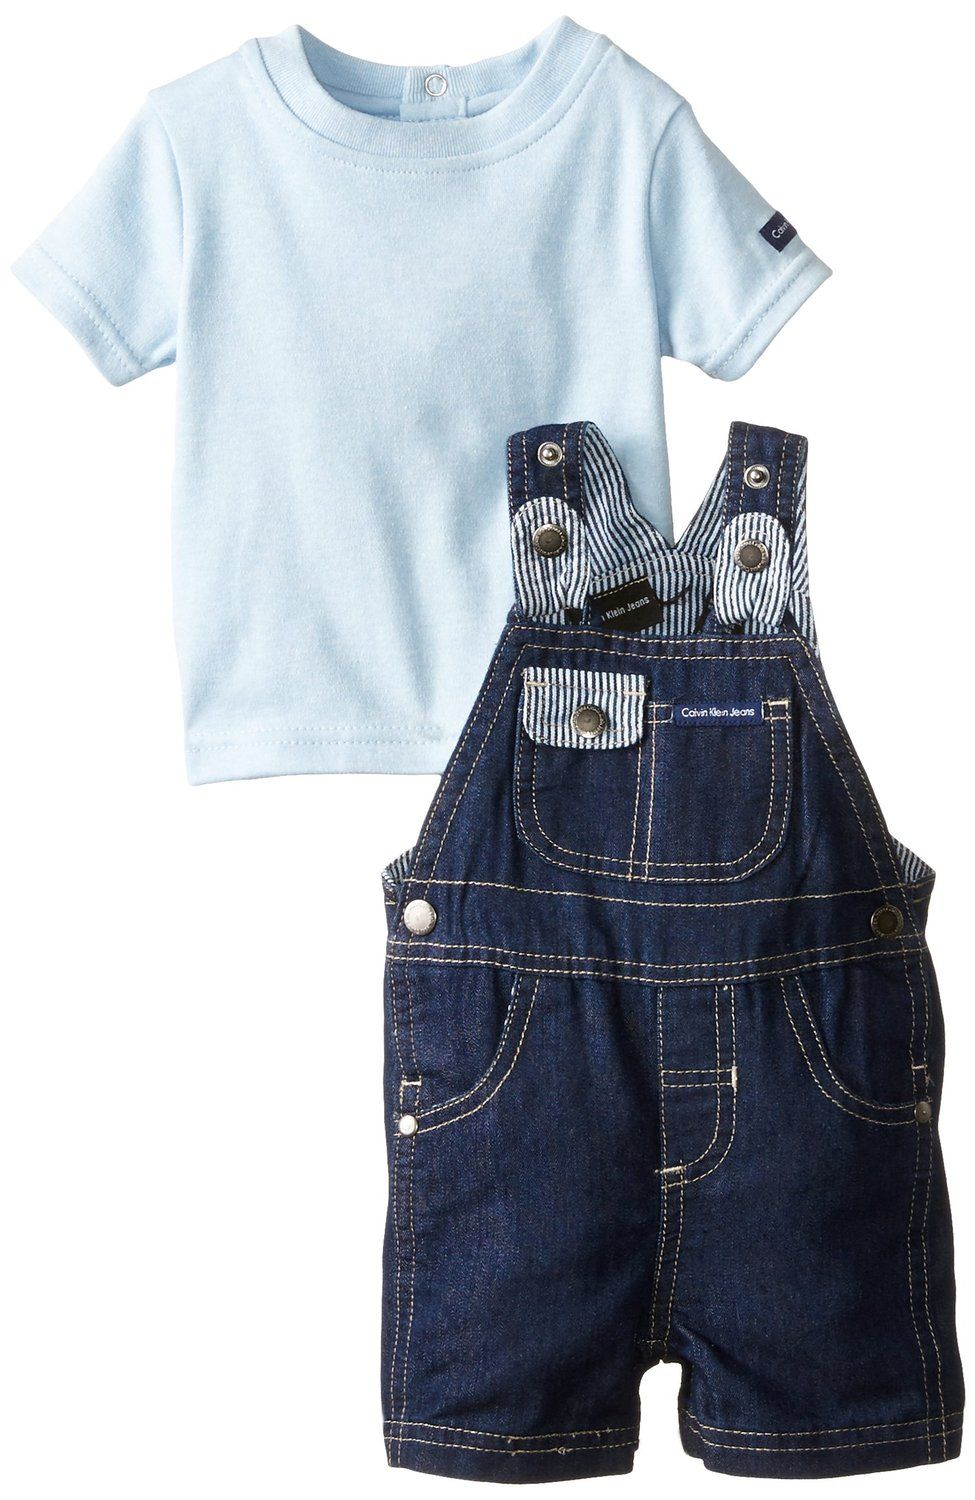 dd5e34615 Amazon.com  Calvin Klein Baby-Boys Newborn Denim Shortall with Blue ...